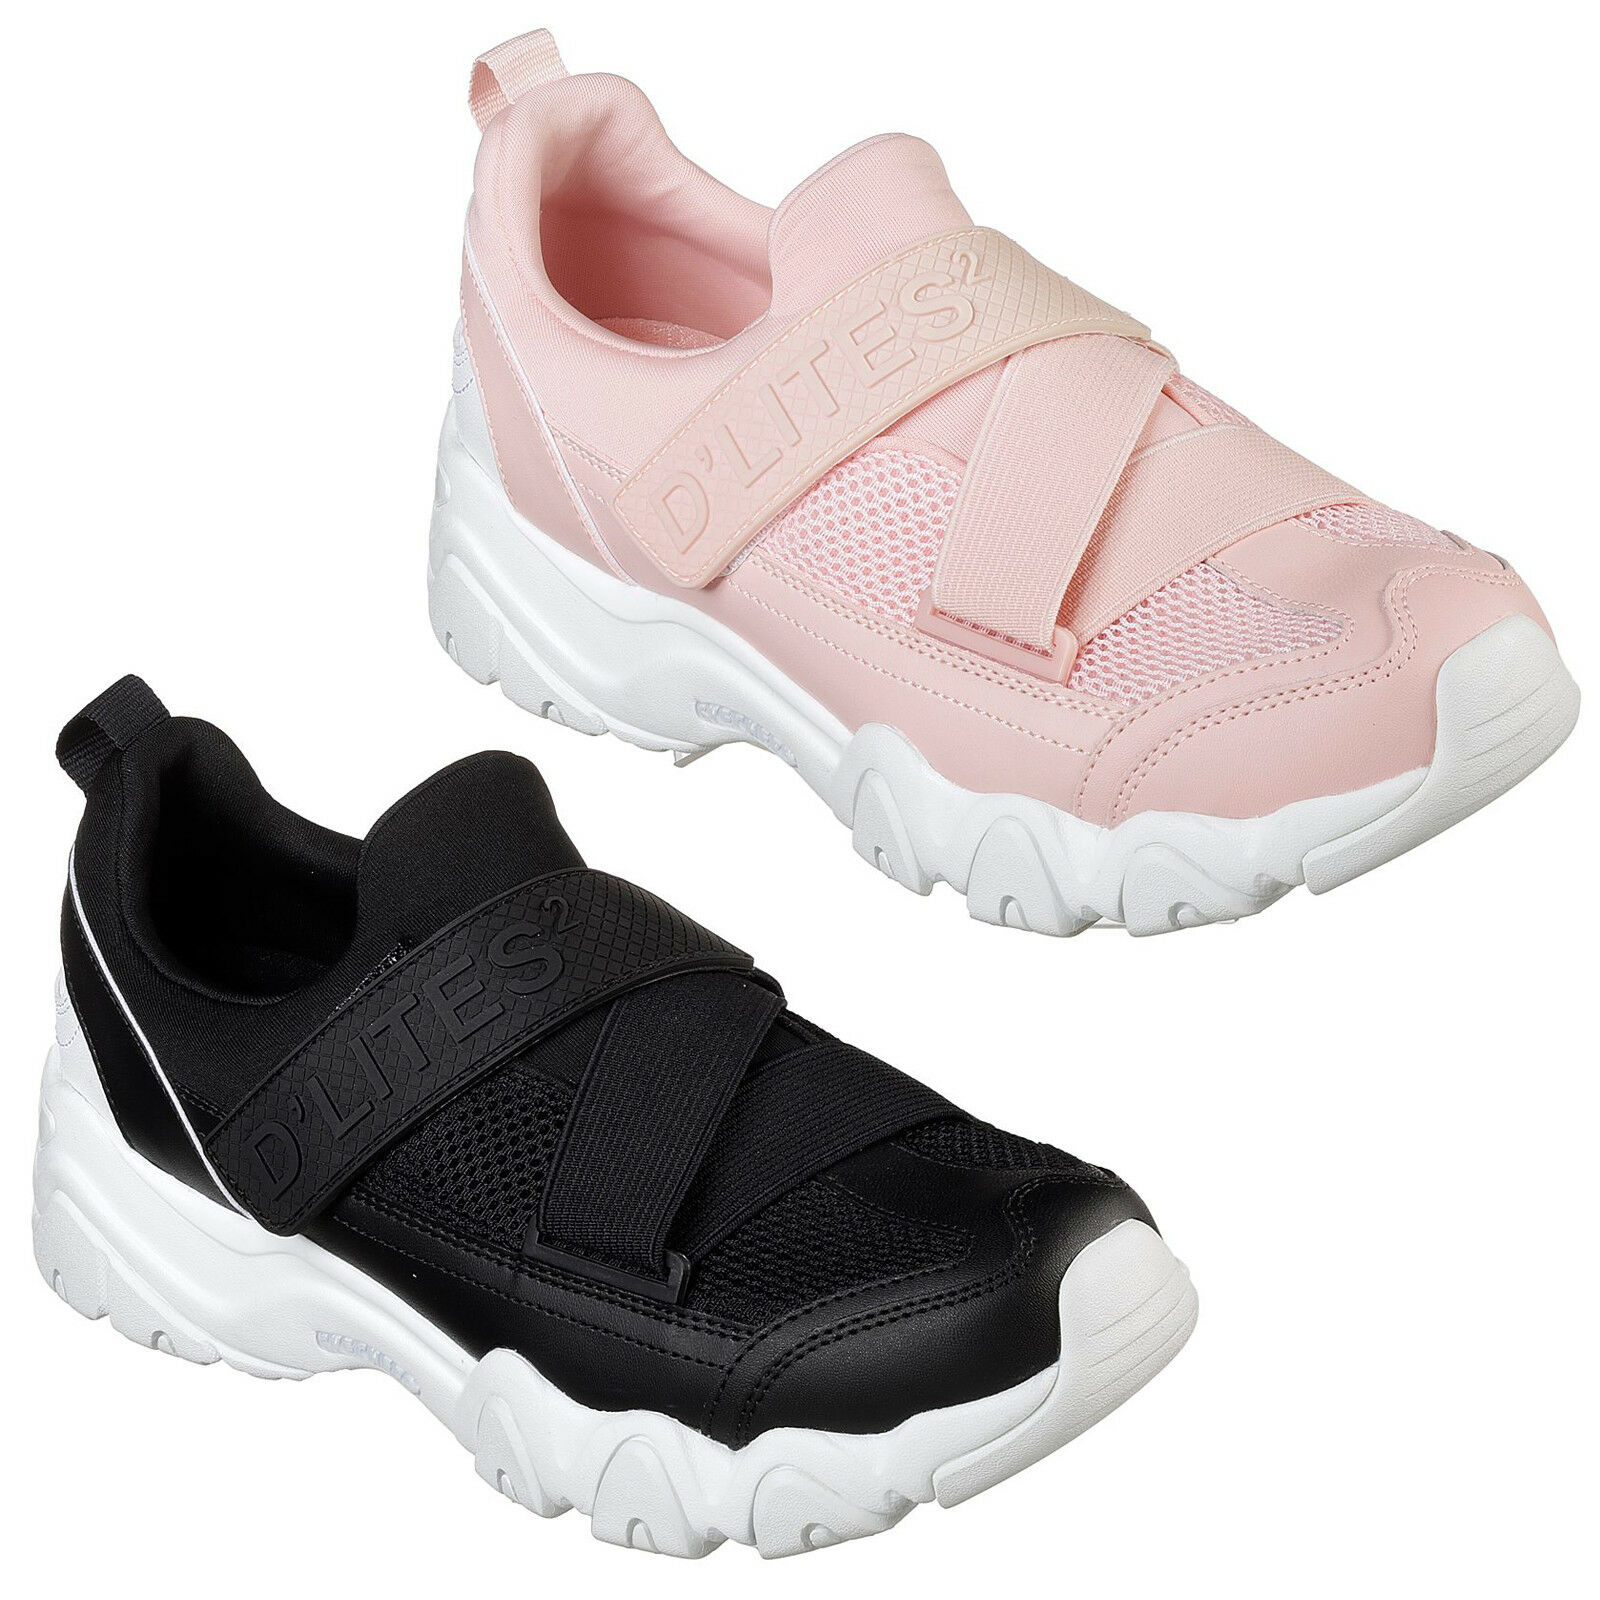 Skechers D'Lites 2 Fast look Trainers Memory Foam Chunky Strap Fashion Womens